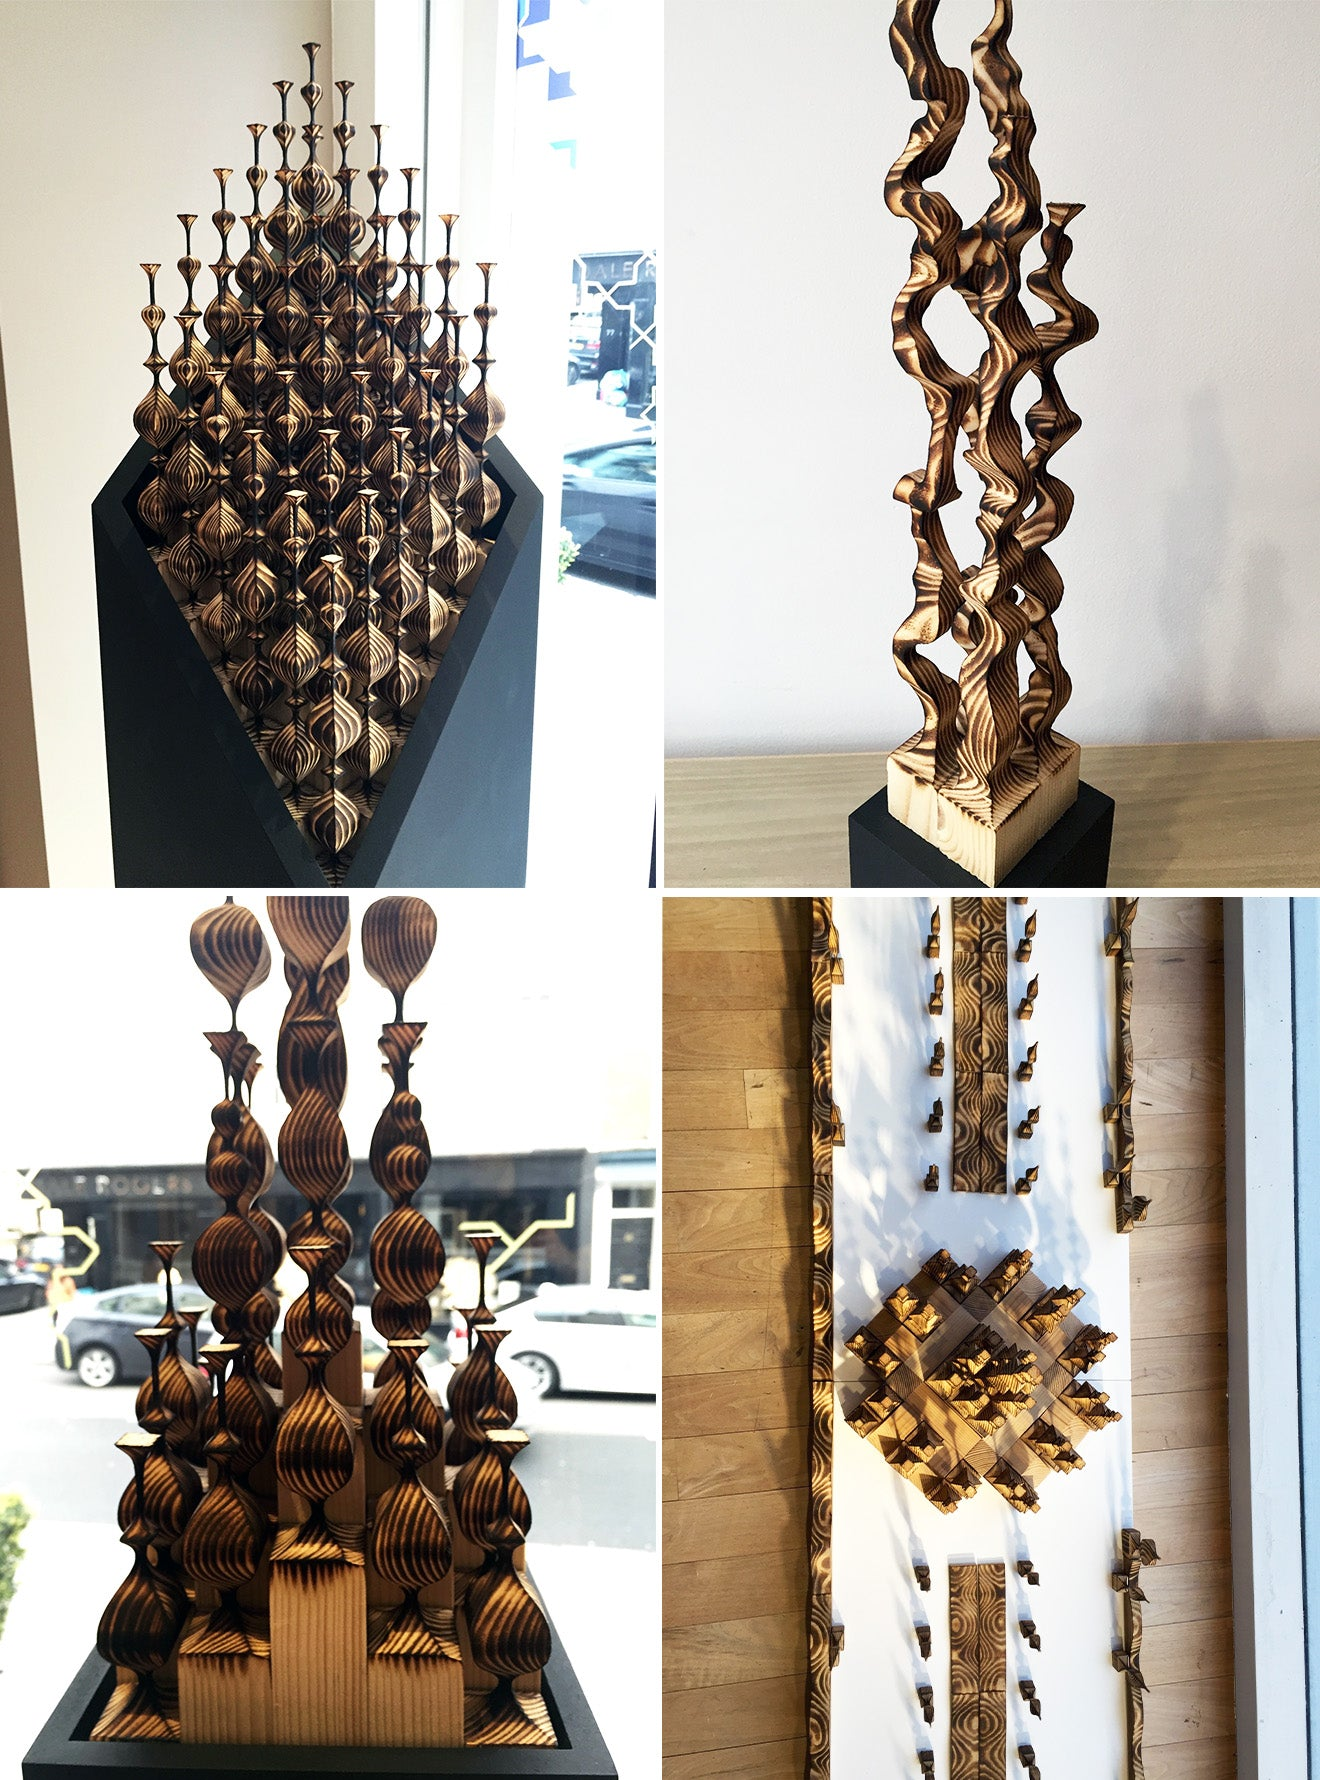 Wooden artwork and carpentry on display at LINLEY